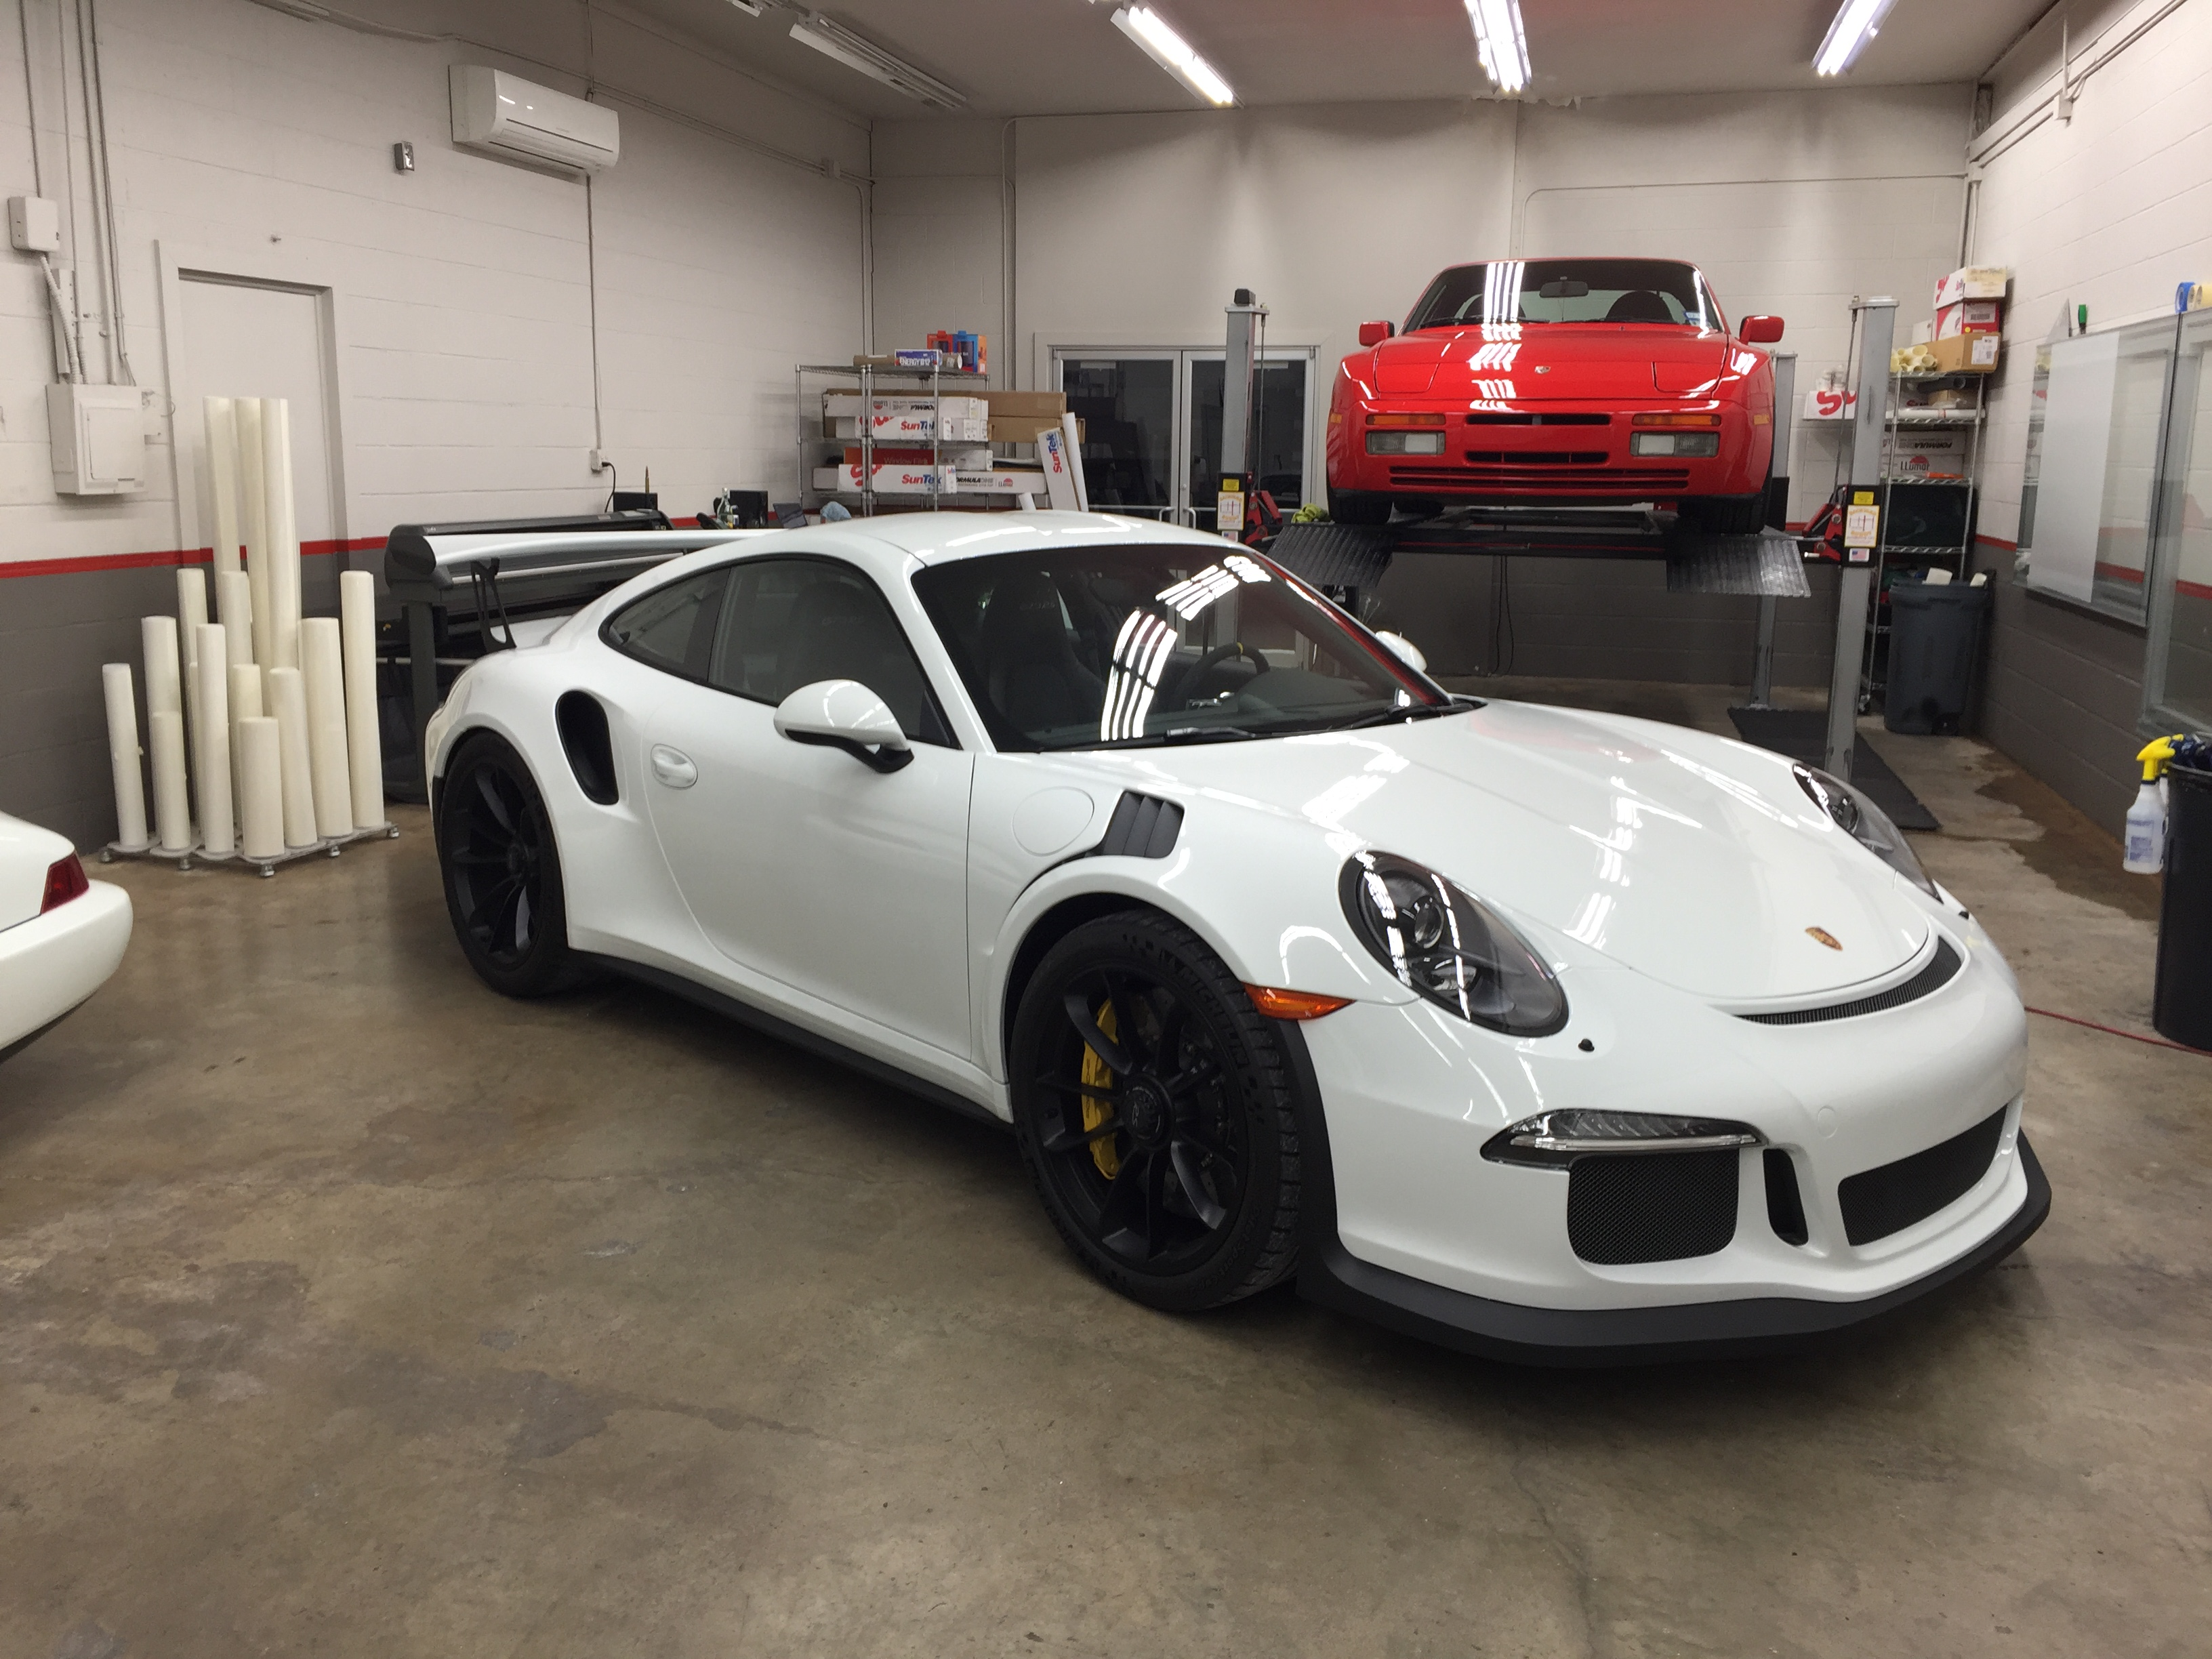 White Porsche with sunbusters paint protection